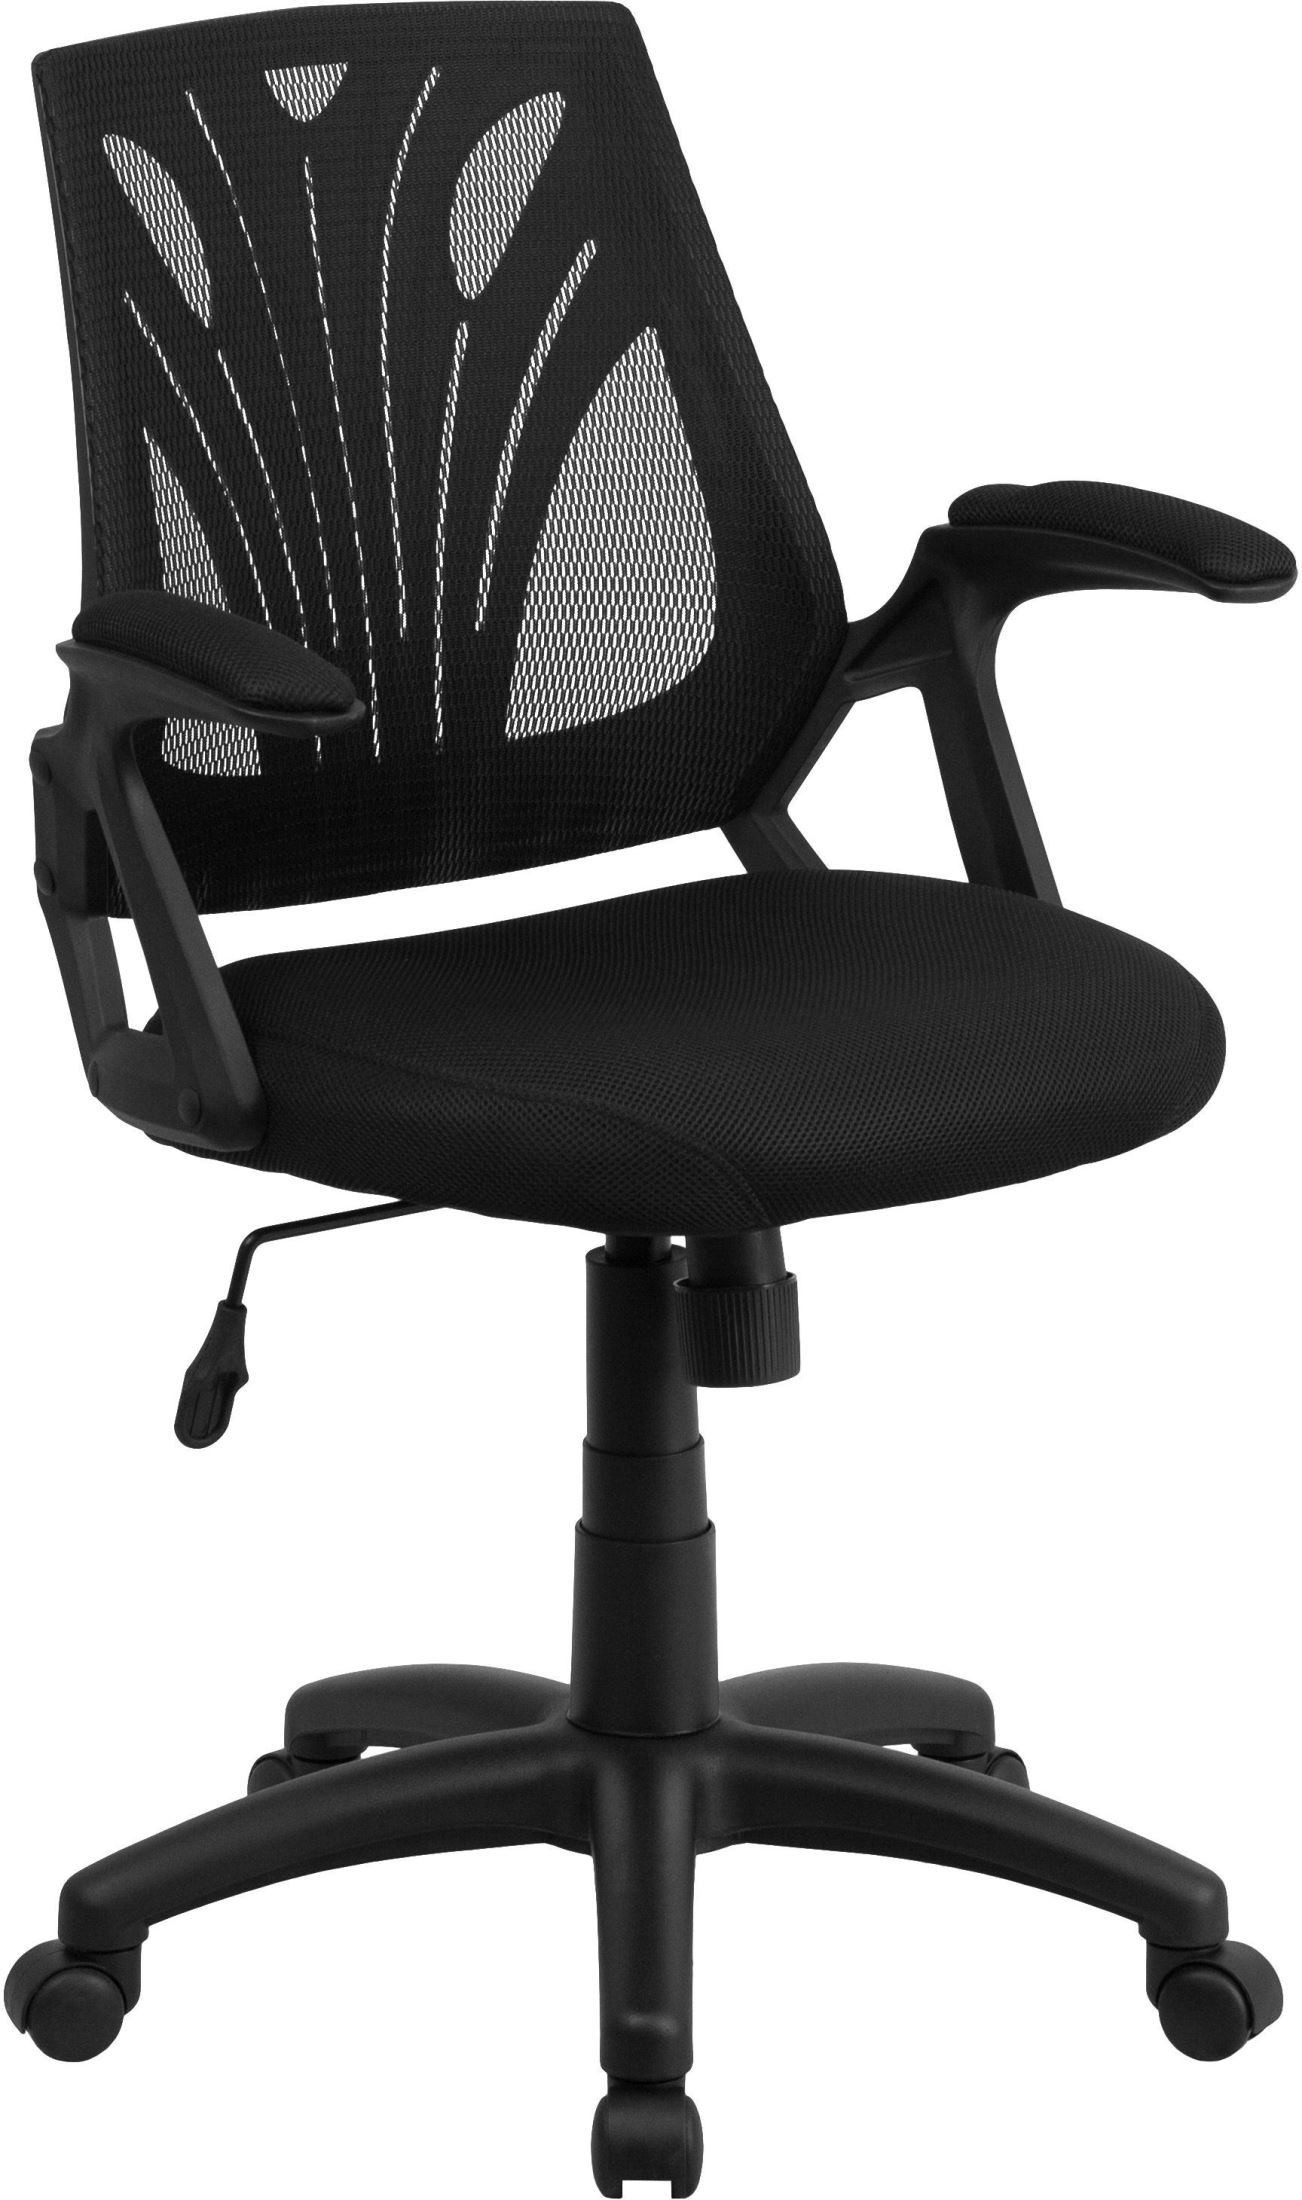 swivel chair keeps turning cheap banquet covers wholesale mid back black mesh padded seat task go wy